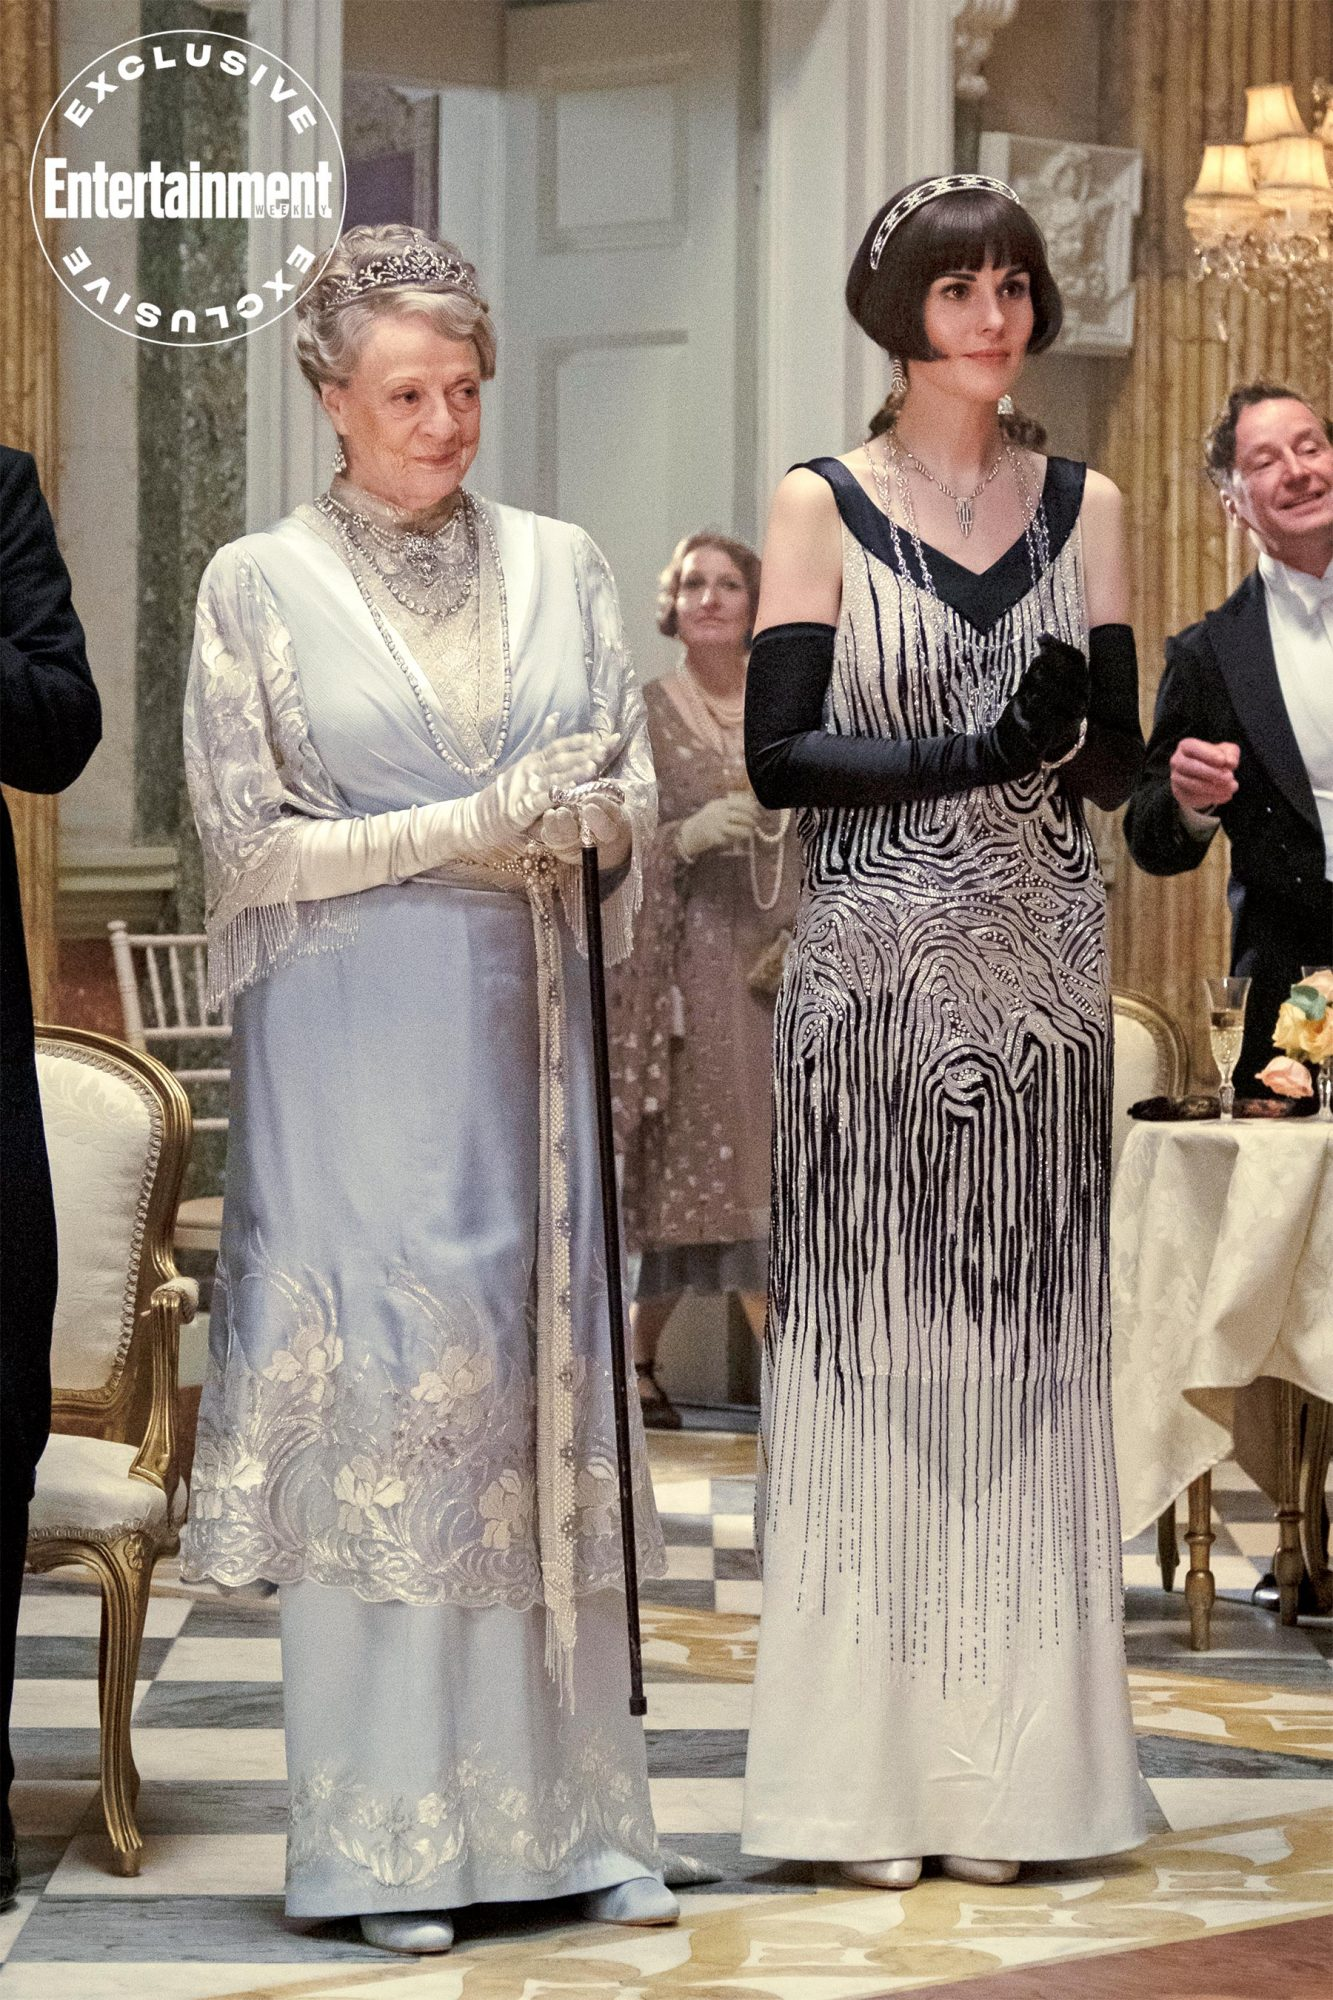 DOWNTON ABBEY Dame Maggie Smith as The Dowager Countess of Grantham and Michelle Dockery as Lady Mary Talbot CR: Jaap Buitendijk/Focus Features